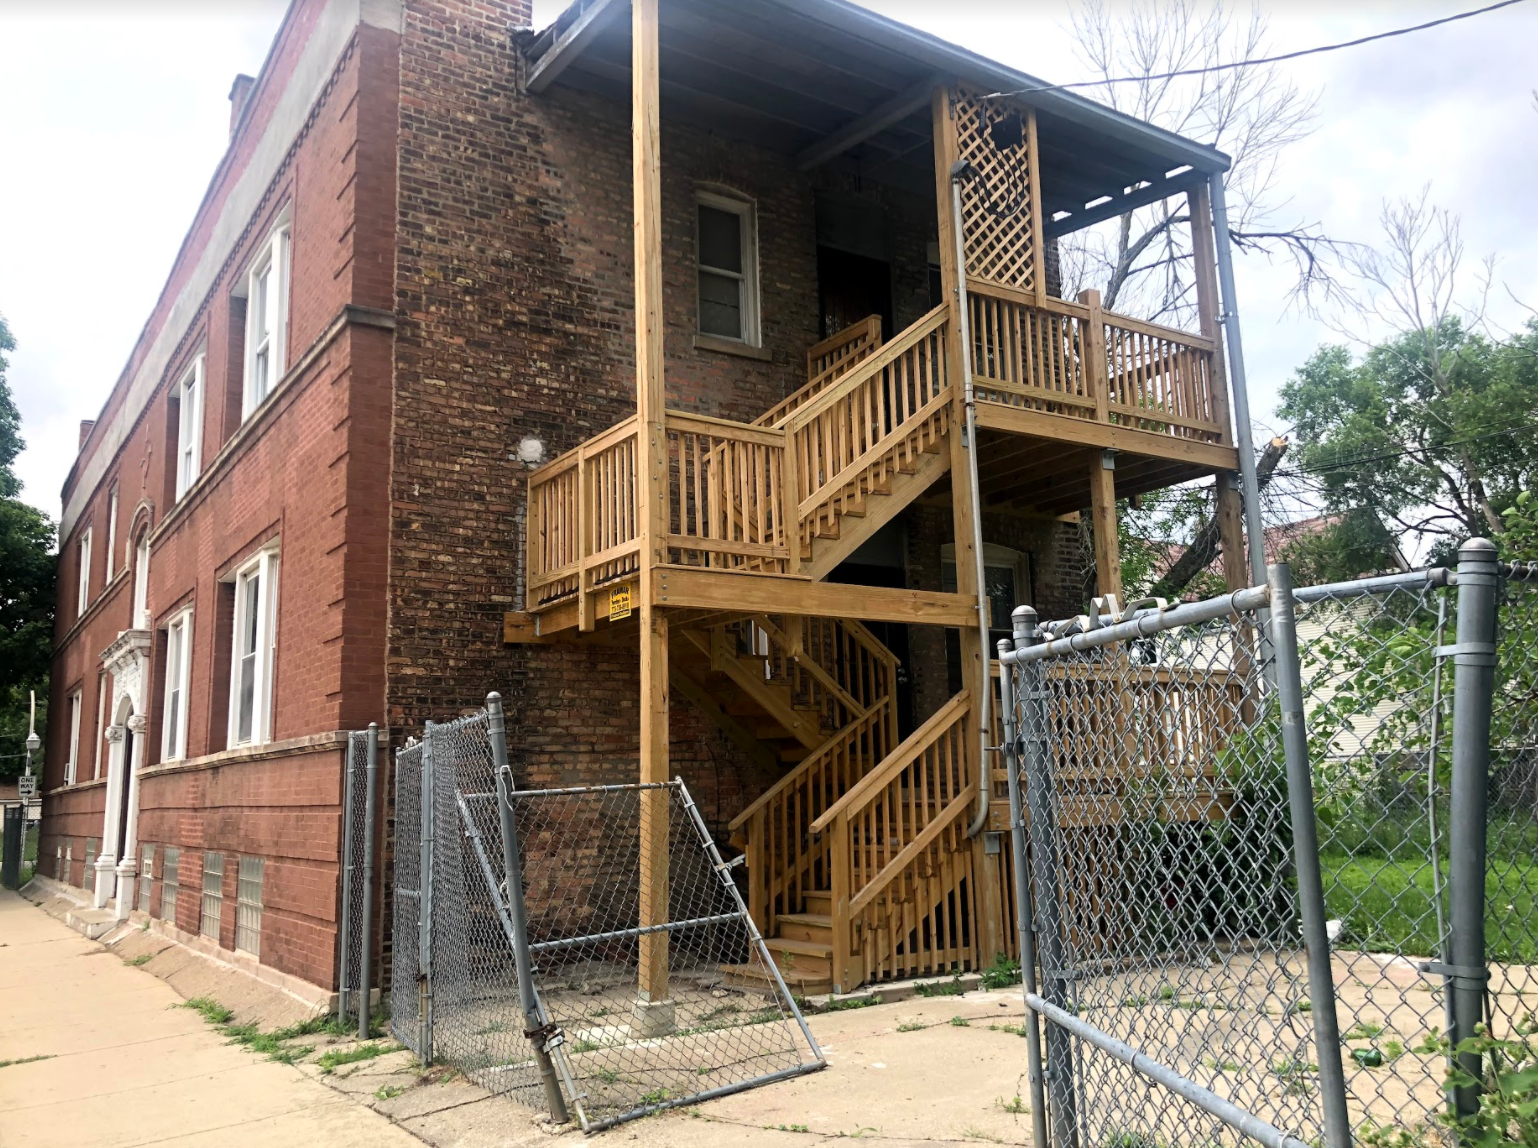 Off Market Four Unit In West Englewood - Property Plug